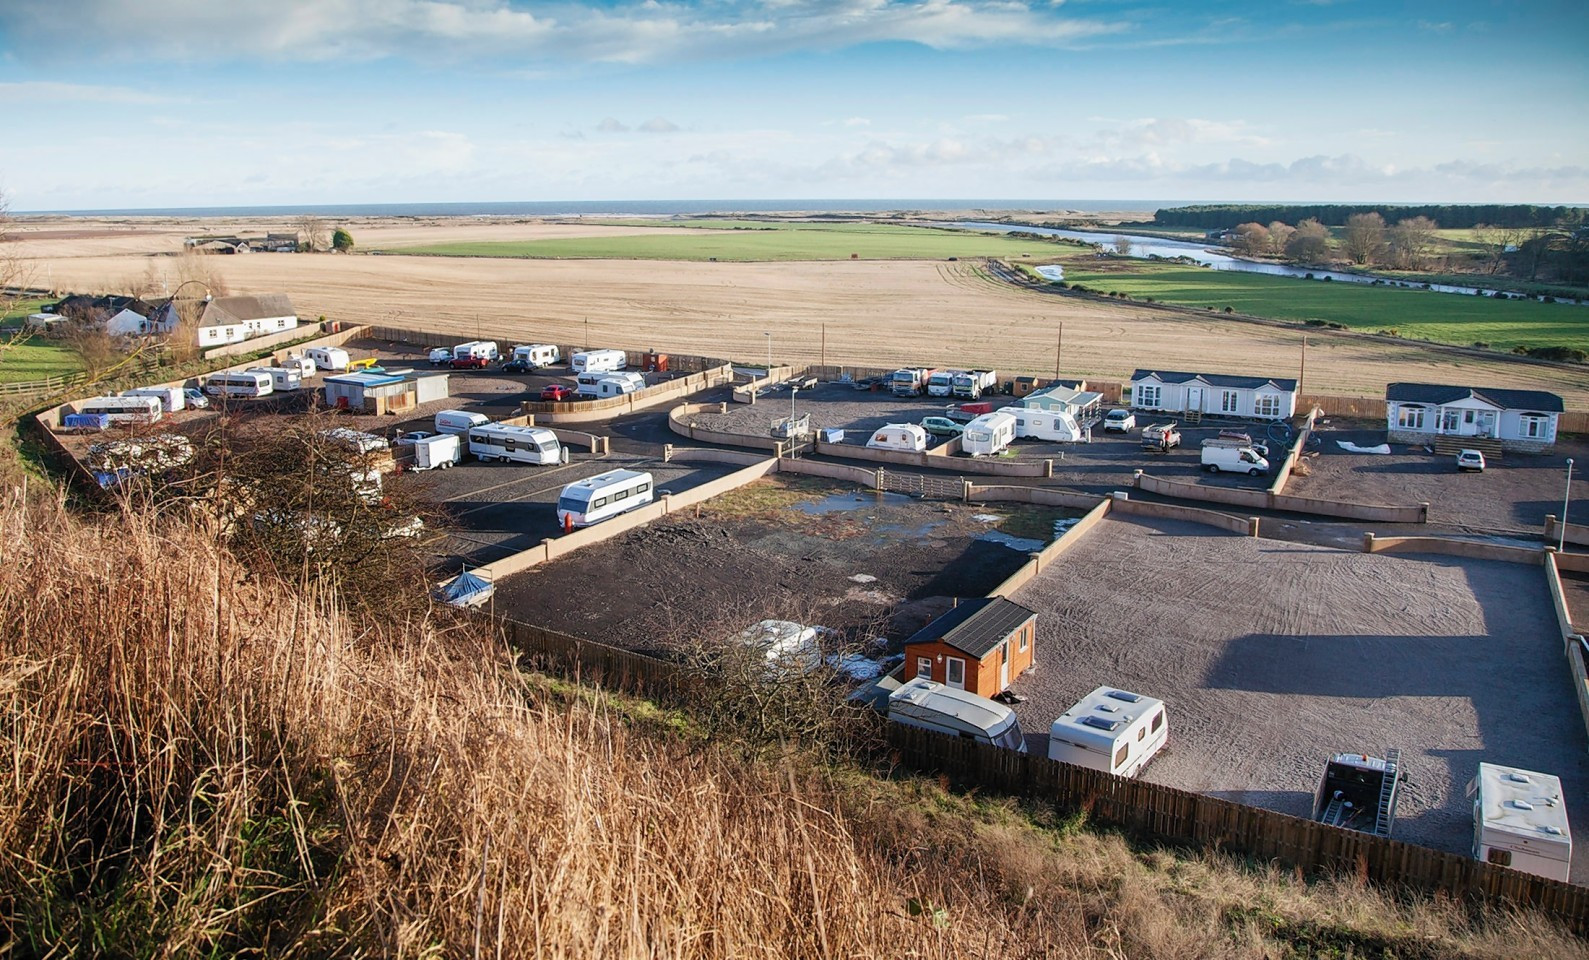 The St Cyrus travellers site